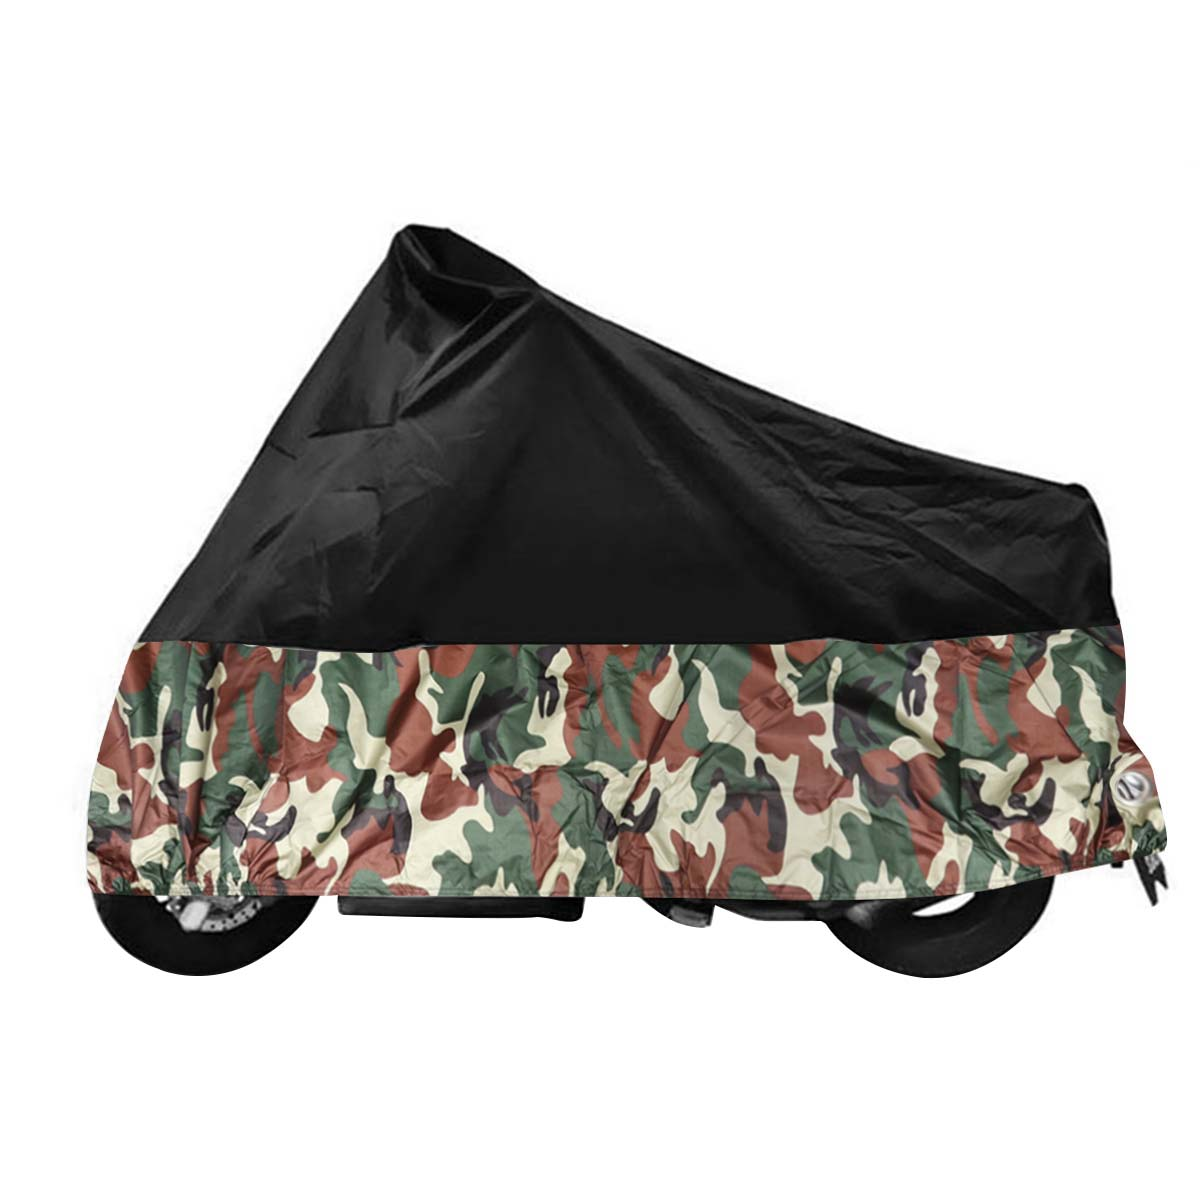 Cover Motorcycle-Protector-Cover Water-Resistant Outdoor 1PC with Storage-Bag A30 Breathable